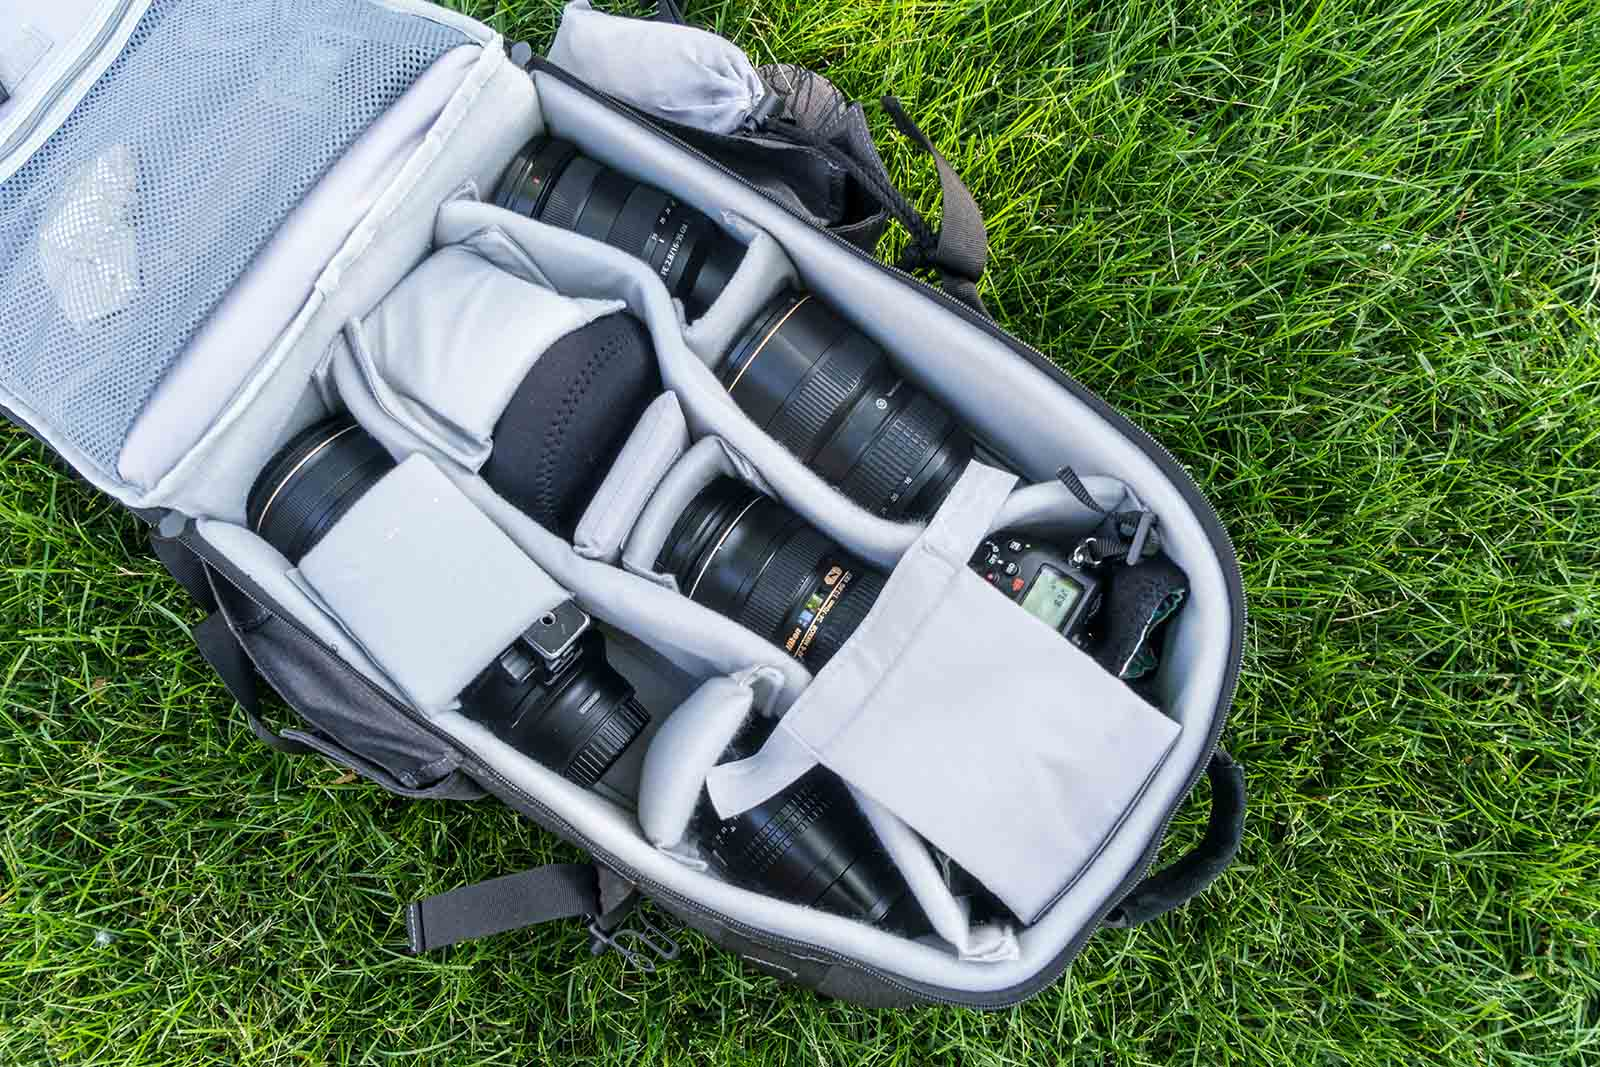 Promaster backpack for landscape photography